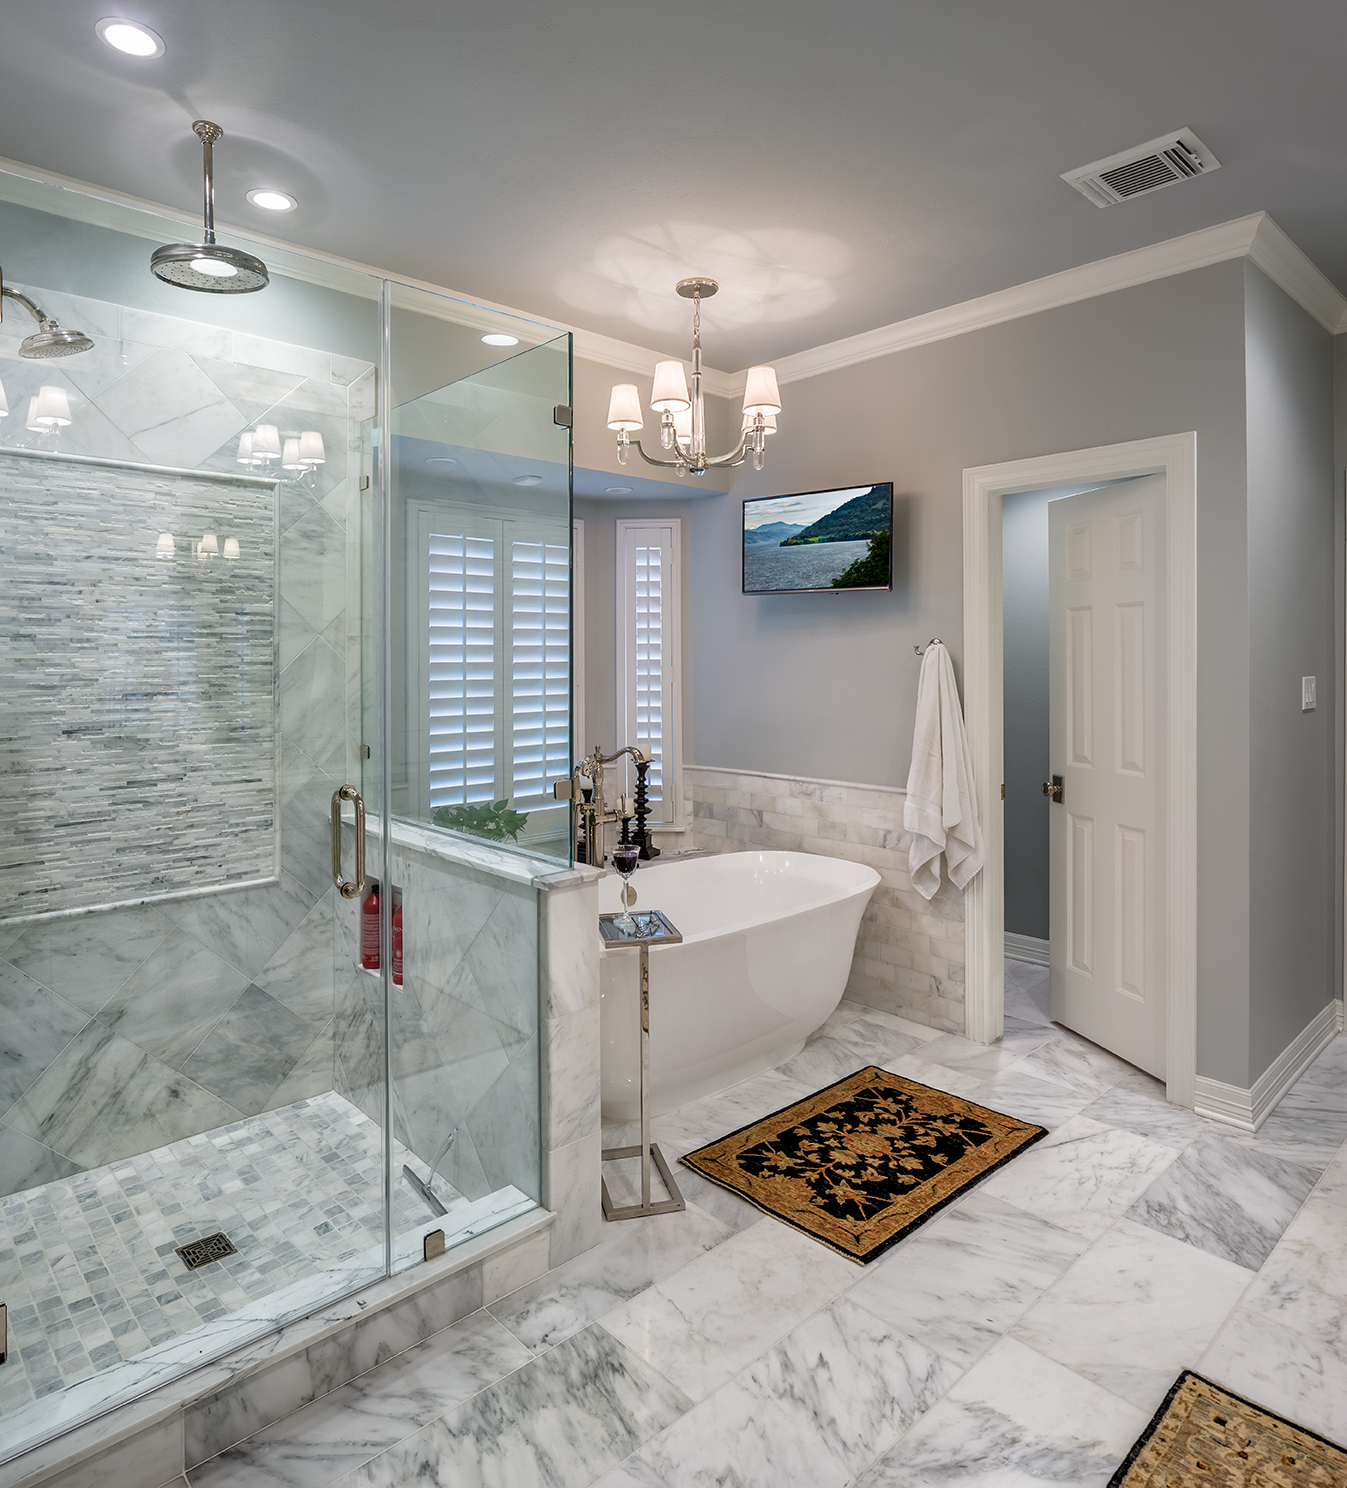 Bathrooms: Get The Biggest Bang For Your Buck